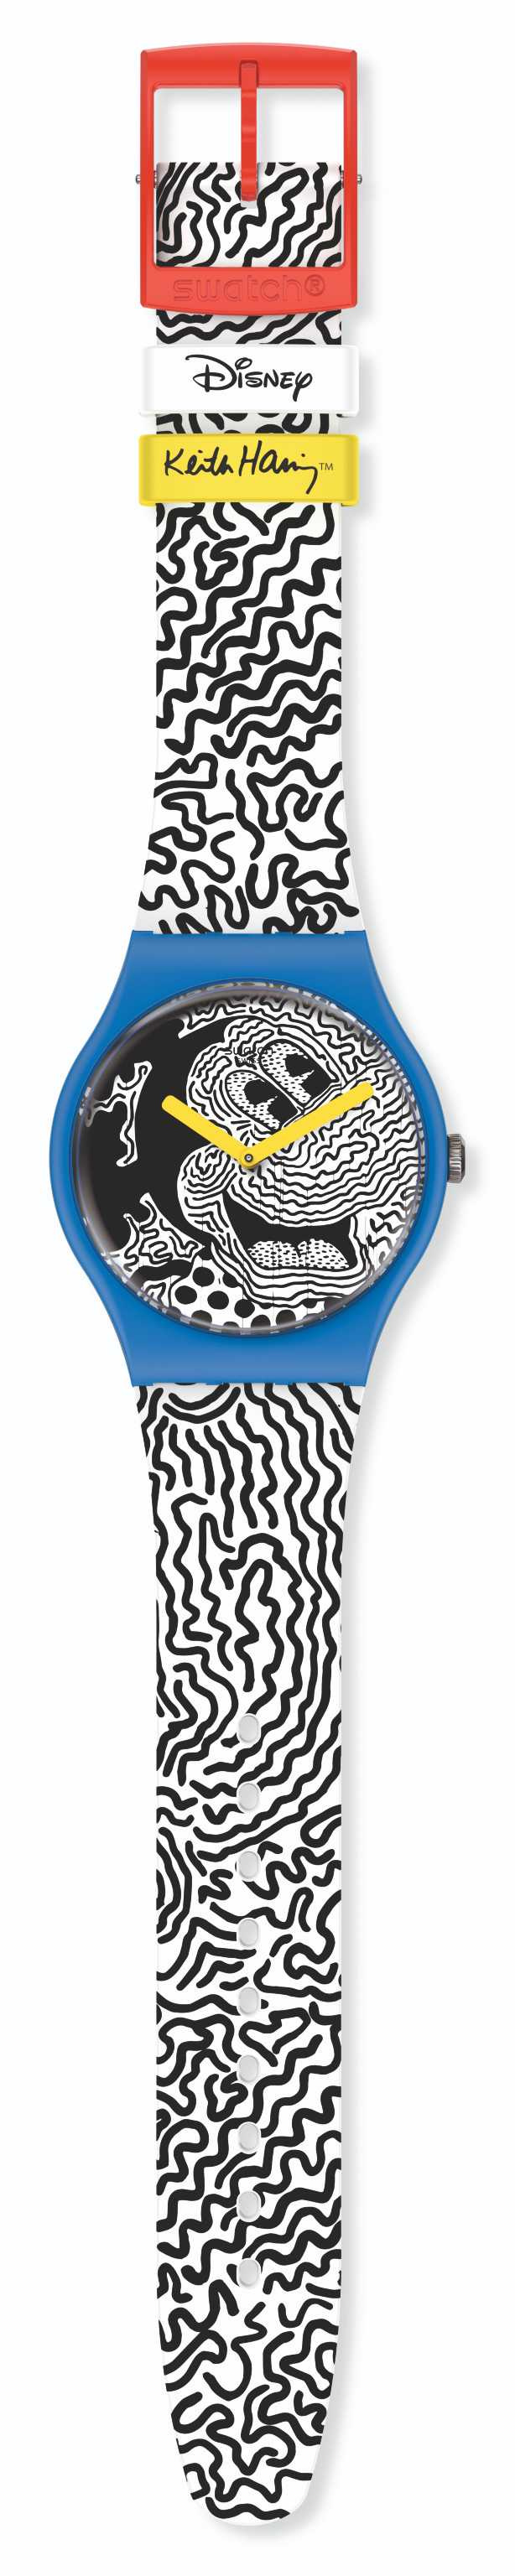 swatch 「電流米奇」Disney Mickey Mouse X Keith Haring 聯名腕錶 NT$6,000